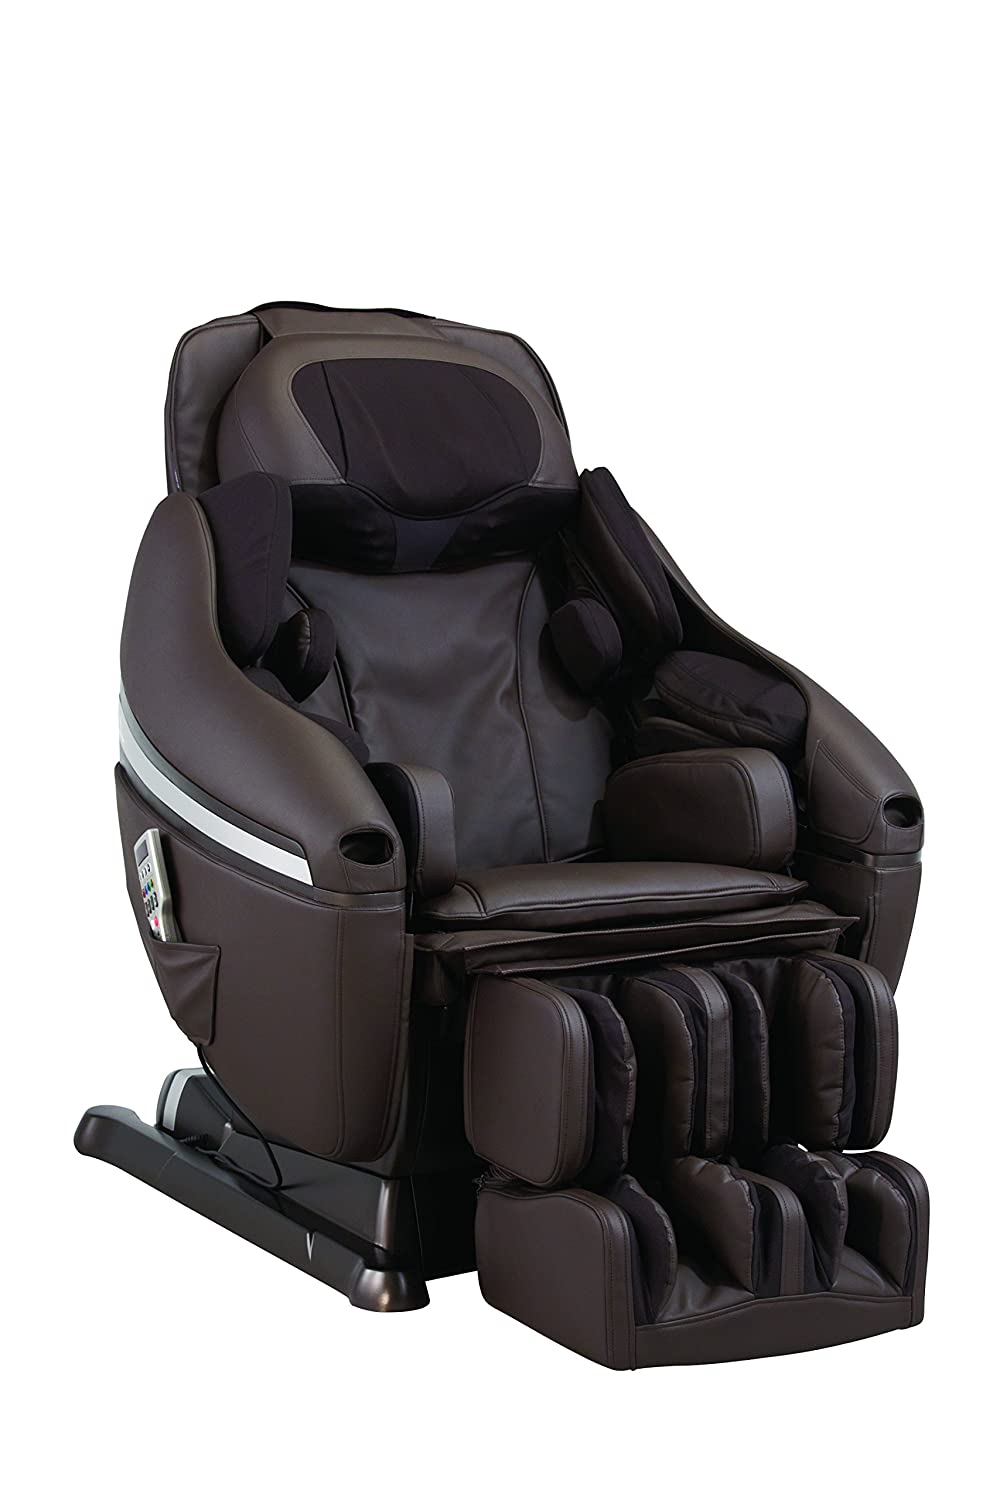 Amazoncom INADA DreamWave Massage Chair Dark Brown Health